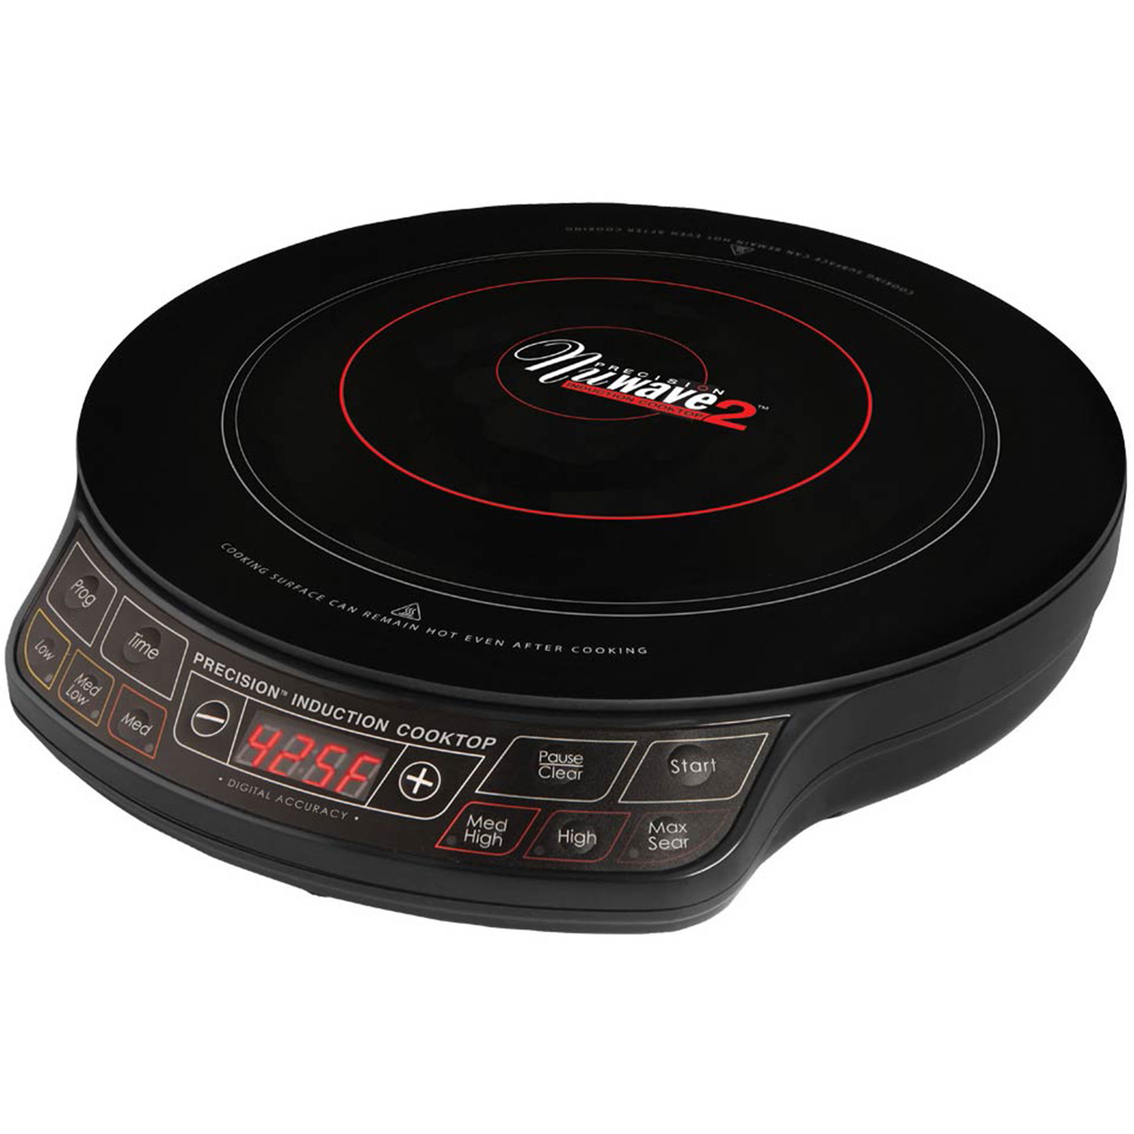 Nuwave Induction Cooker ~ Nuwave induction cooktop with in ceramic frying pan